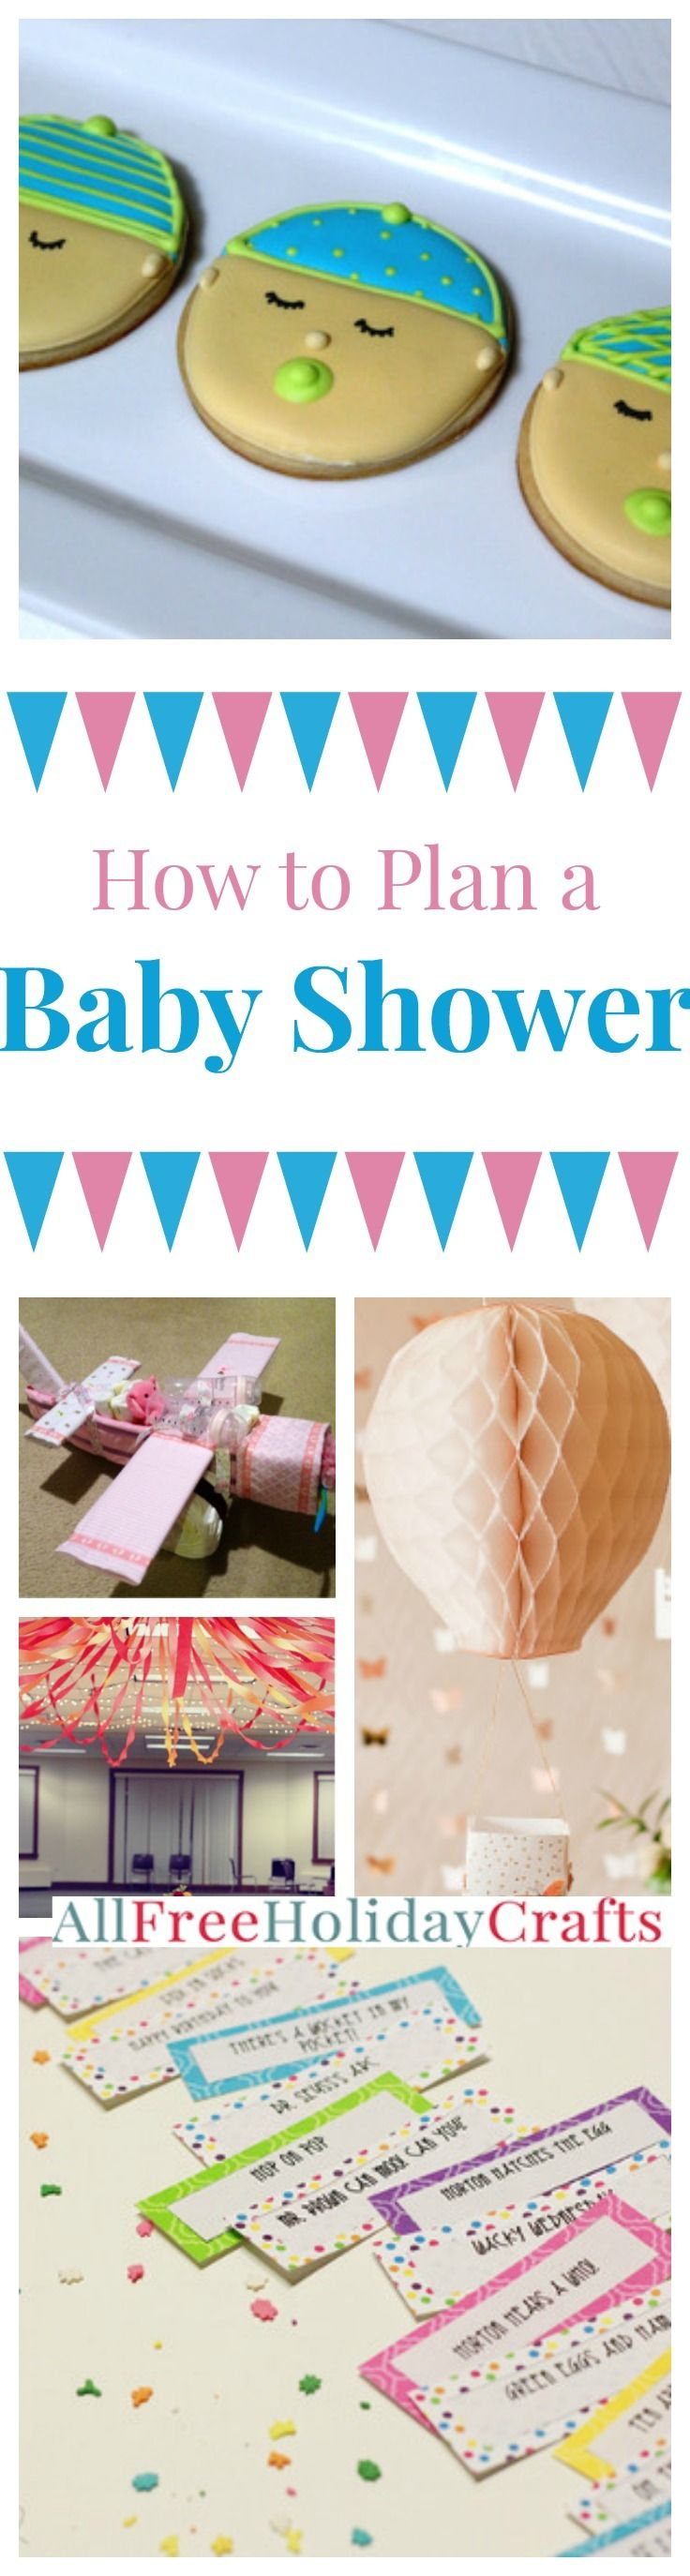 How to Plan a Baby Shower | AllFreeHolidayCrafts.com